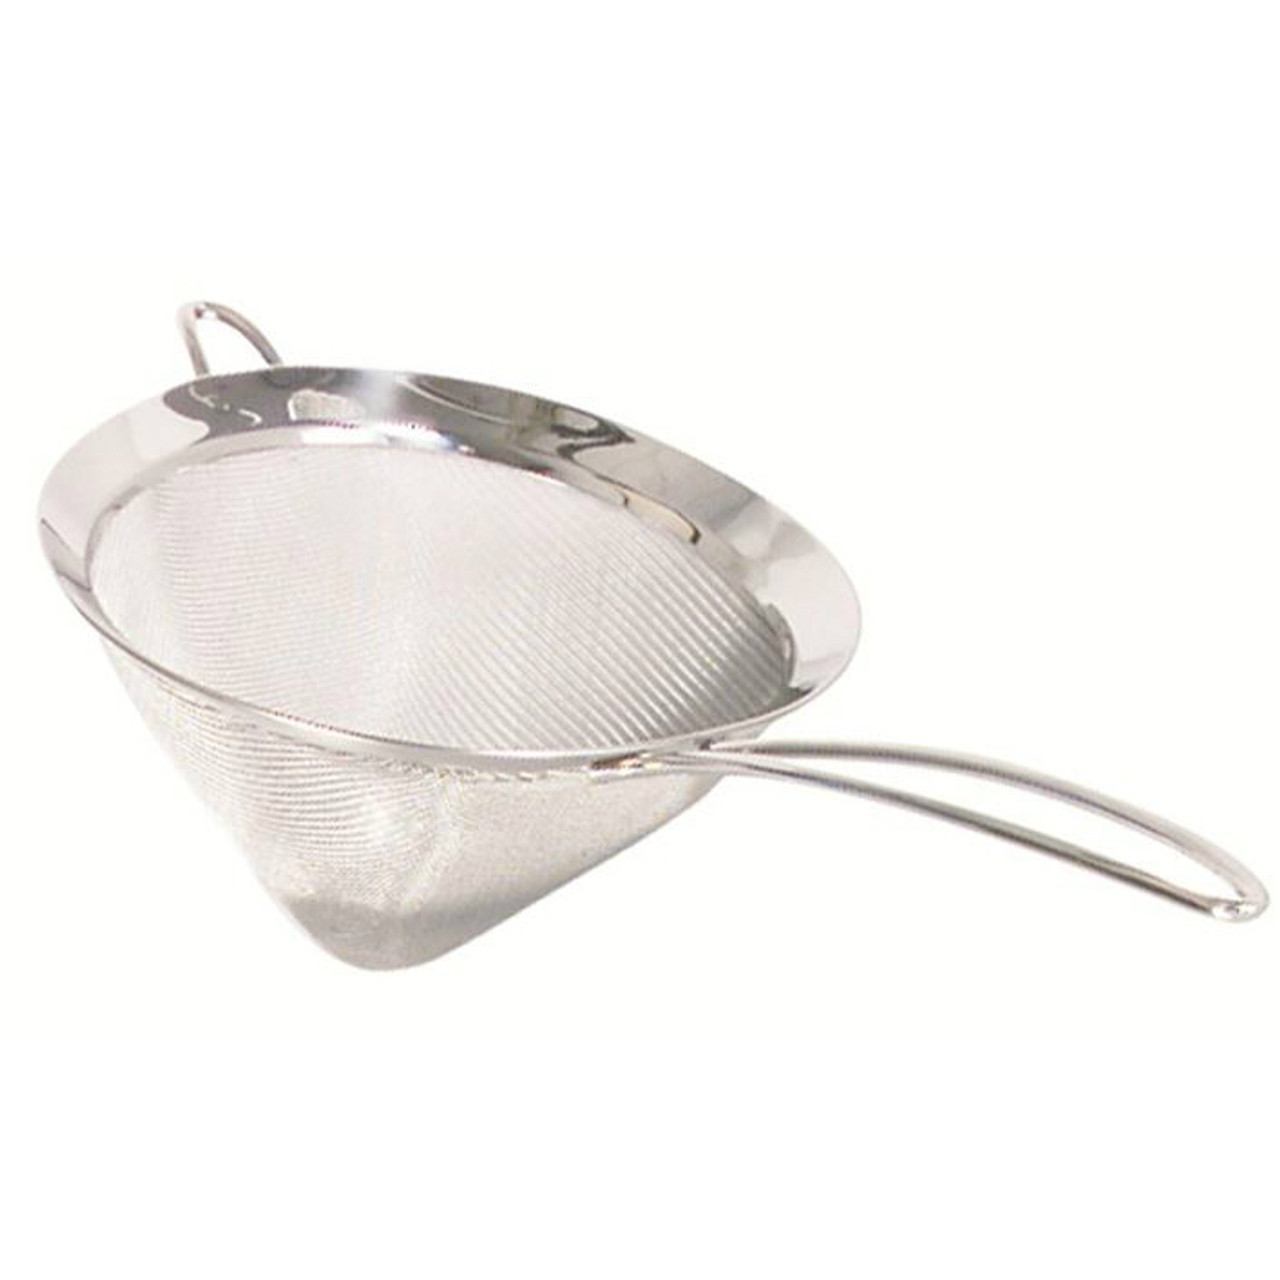 CUISIPRO MESH STRAINER CONE SHAPED 7""